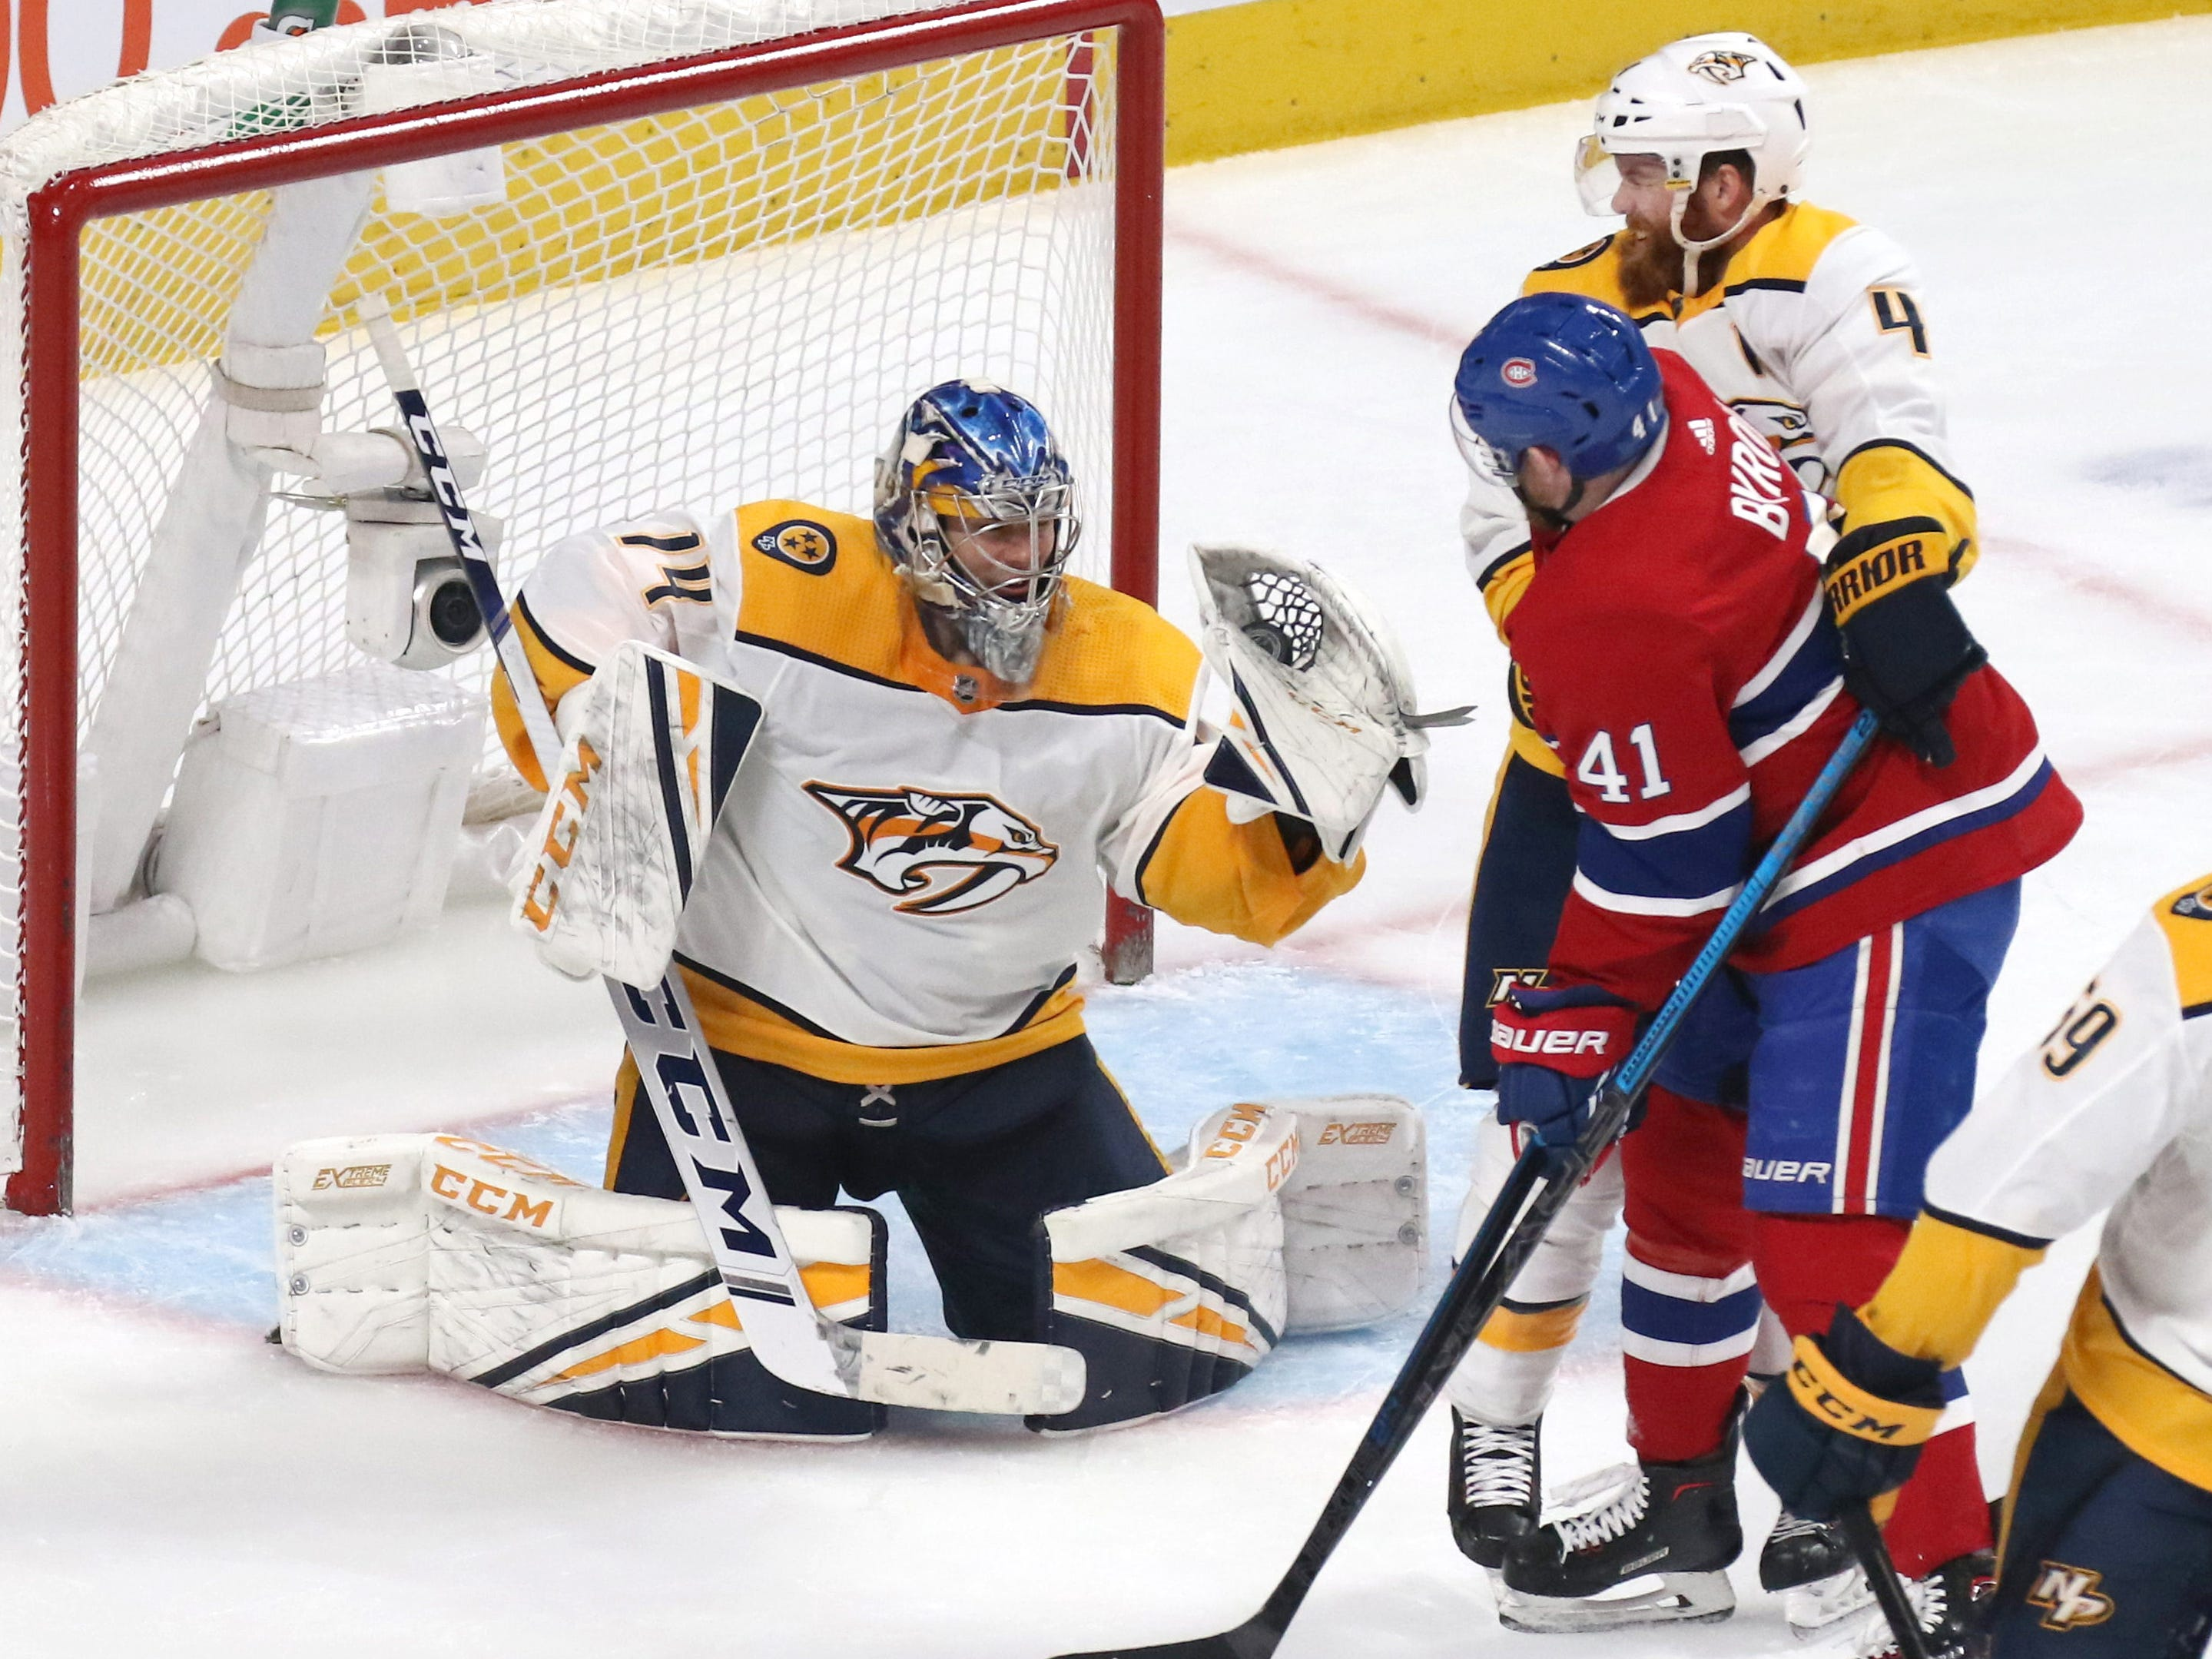 Nashville Predators goaltender Juuse Saros (74) makes a save against Montreal Canadiens left wing Paul Byron (41) as Nashville defenseman Ryan Ellis (4) assists during the third period at Bell Centre.